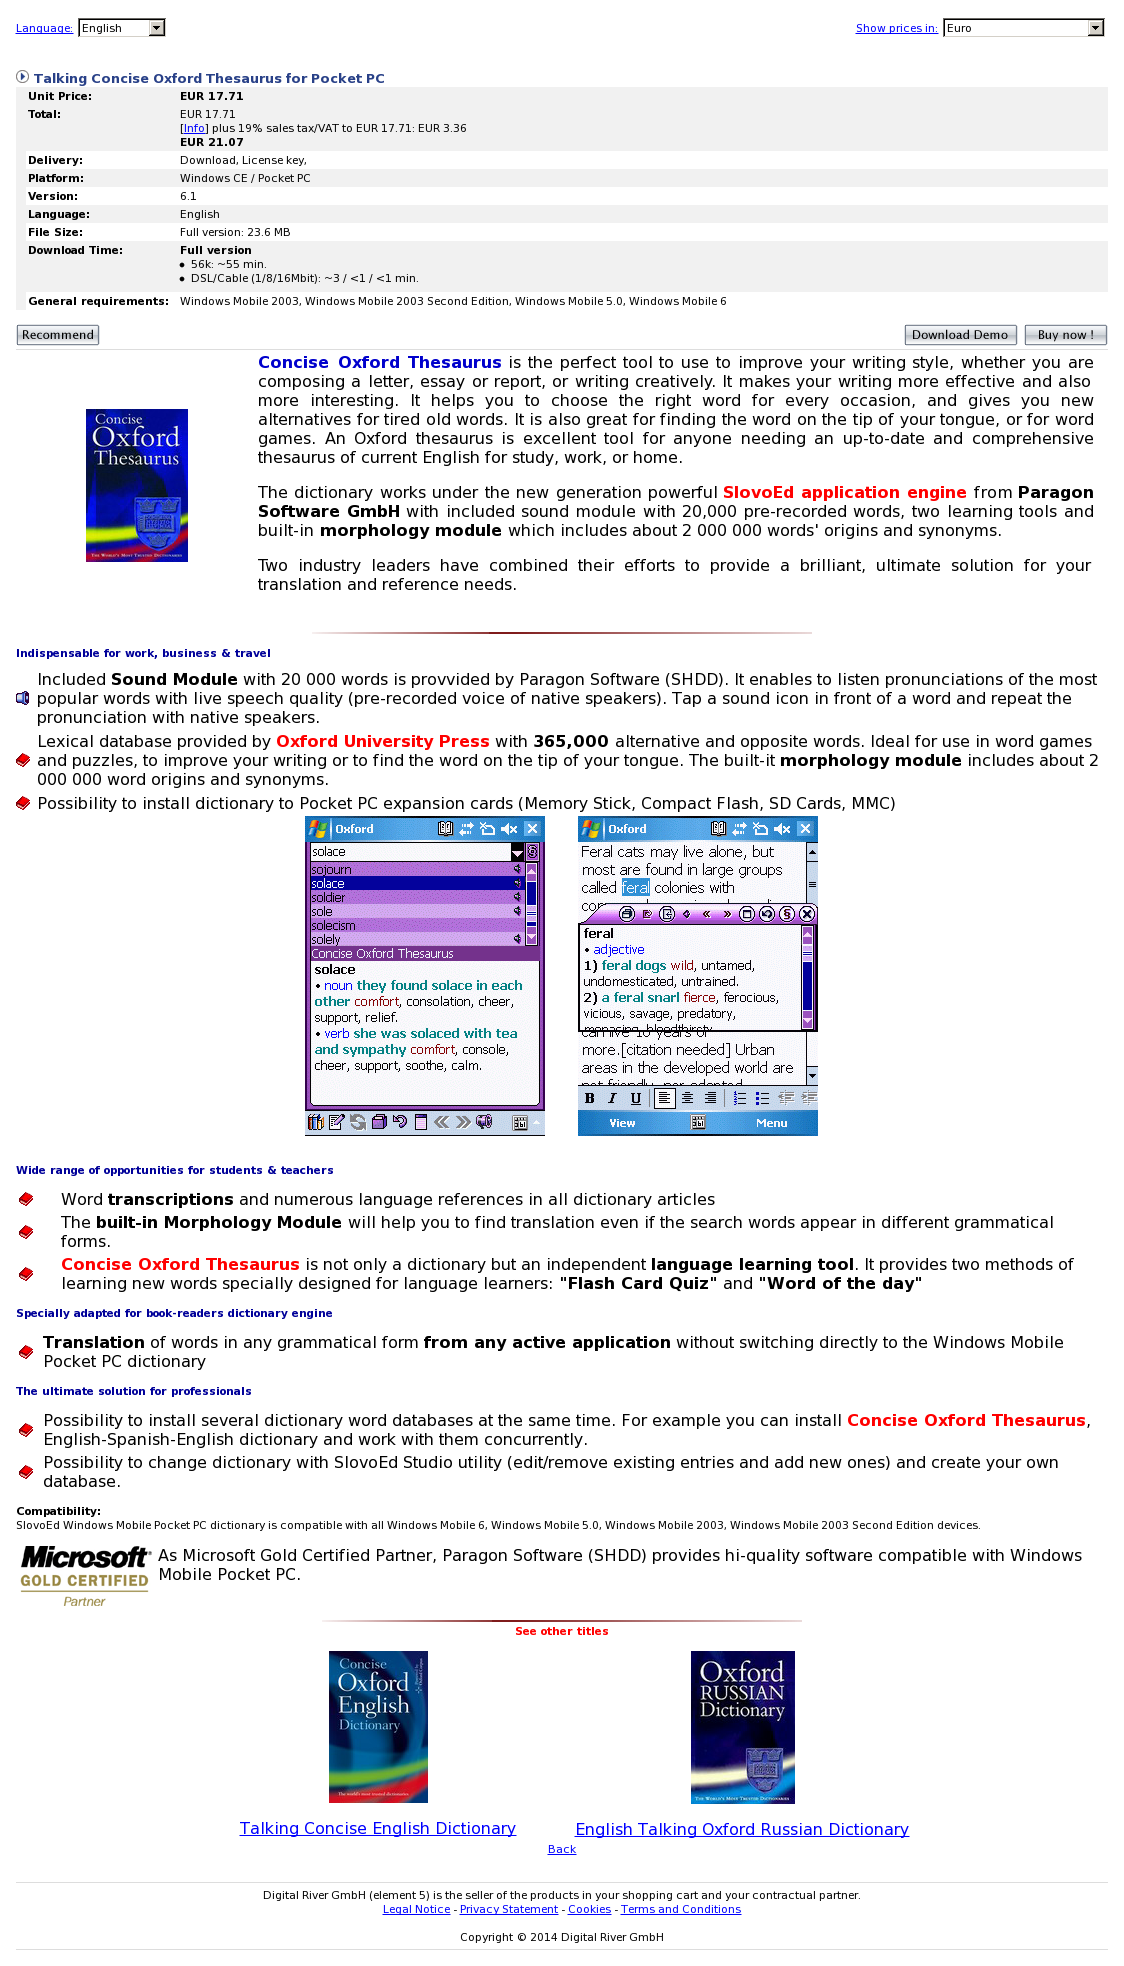 Talking Concise Oxford Thesaurus for Pocket PC